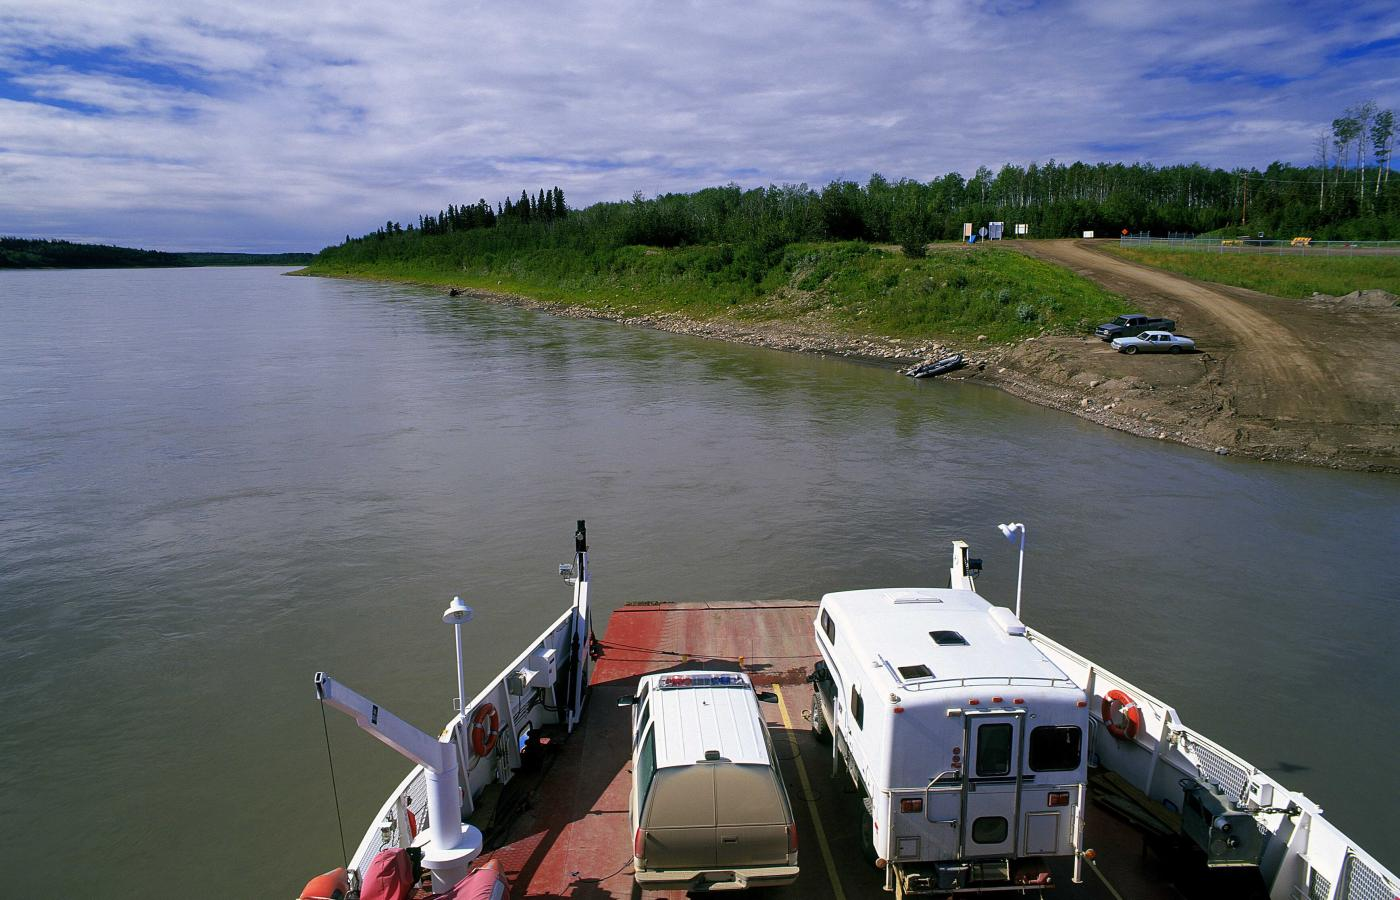 Ferries traverse the Mackenzie River in the Western Arctic region of the NWT